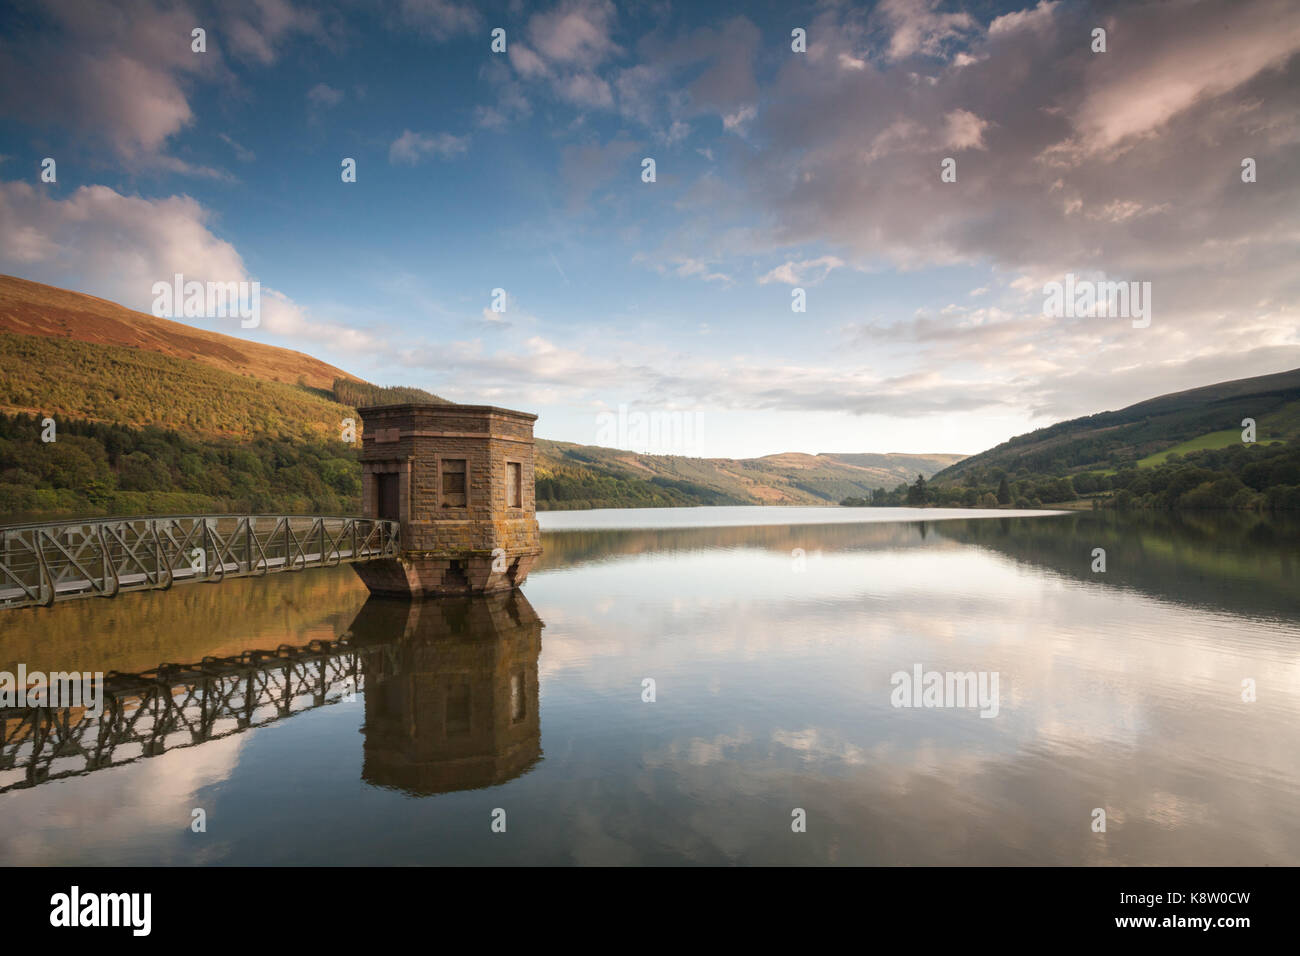 Talybont Reservoir at sunset in autumn, in the Brecon Beacons National Park, Wales, UK. - Stock Image